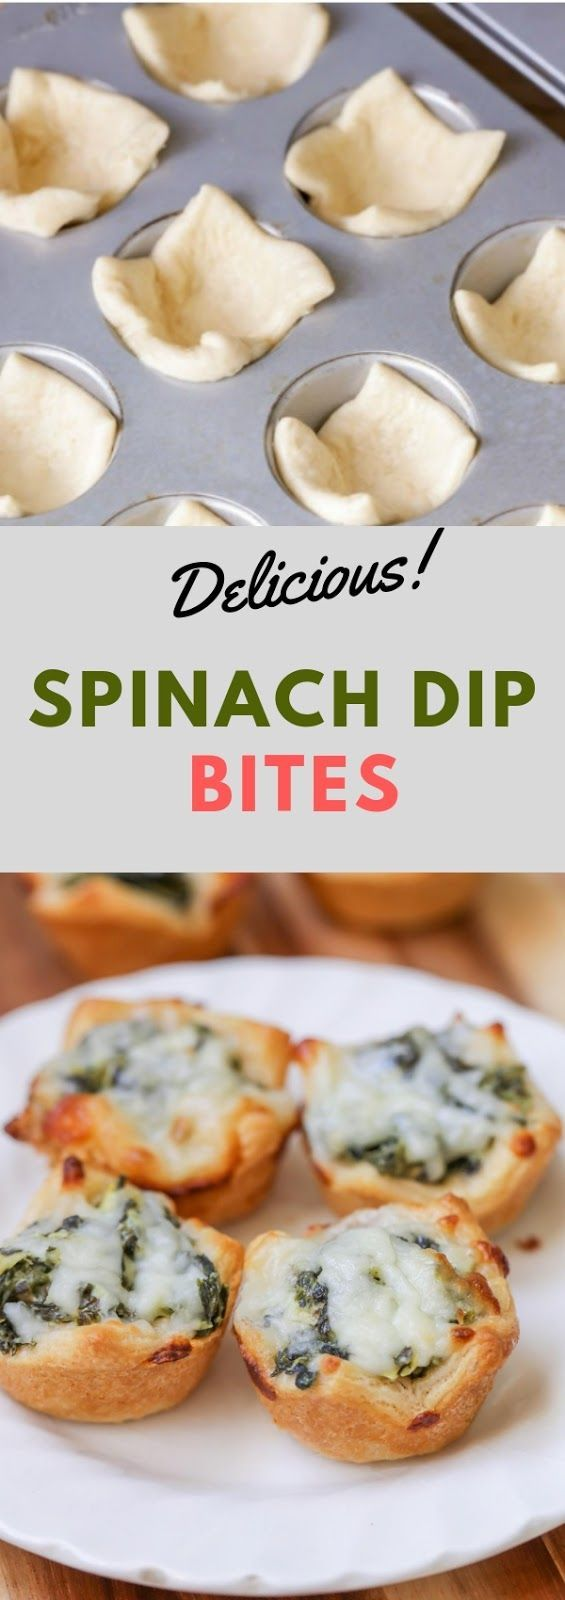 Spinach Dip Bites #fingerfoodappetizers